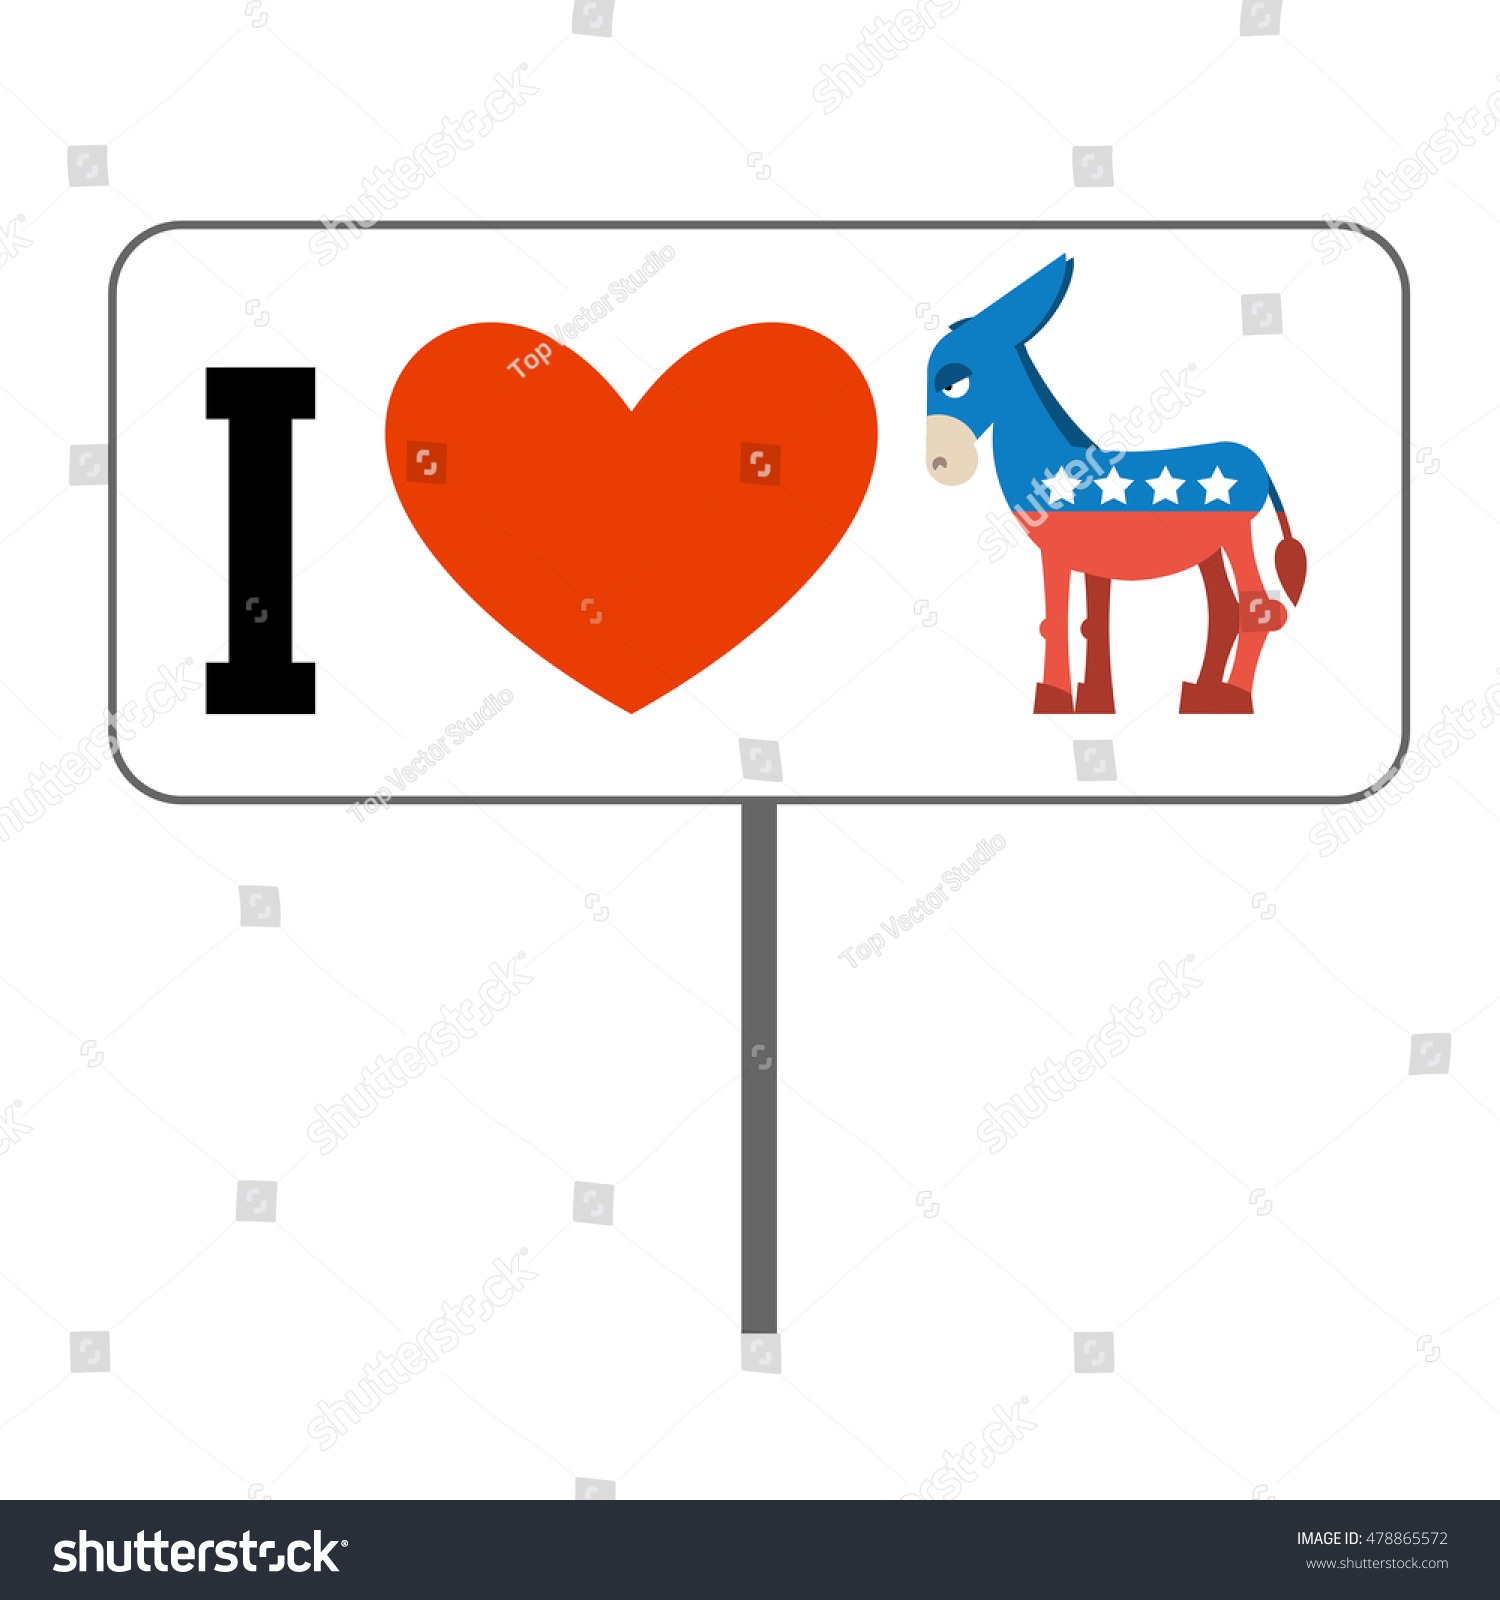 Love democrats symbol heart donkey poster stock vector 478865572 i love democrats symbol of heart and donkey poster for elections in usa buycottarizona